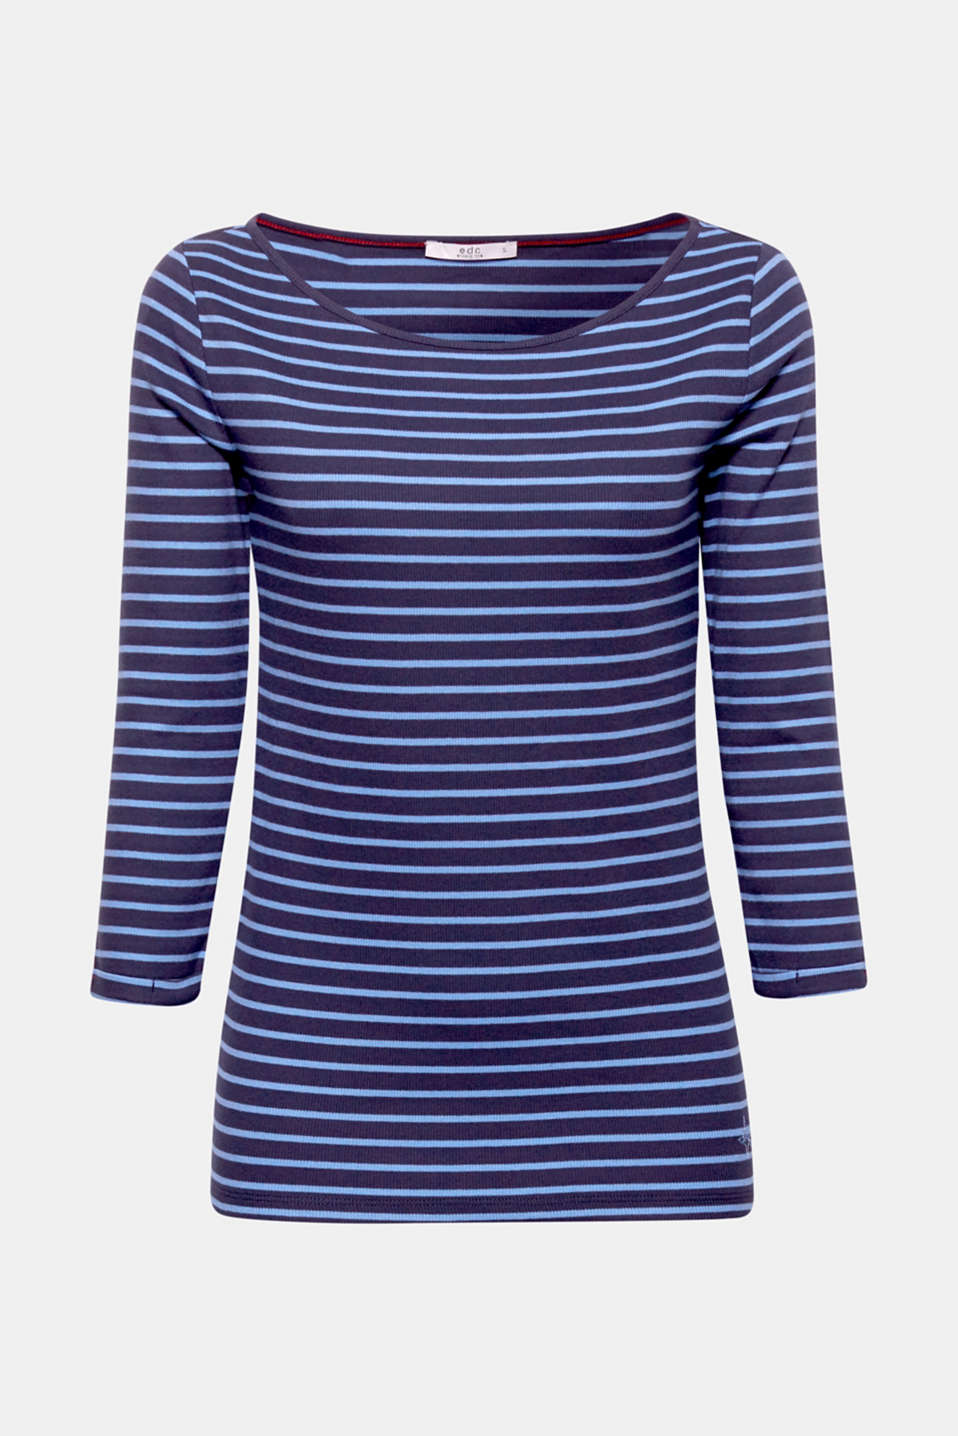 Stripes paired with ribbed jersey – the result is this soft cotton top with a classic bateau neckline which rounds off a range of casual looks perfectly.